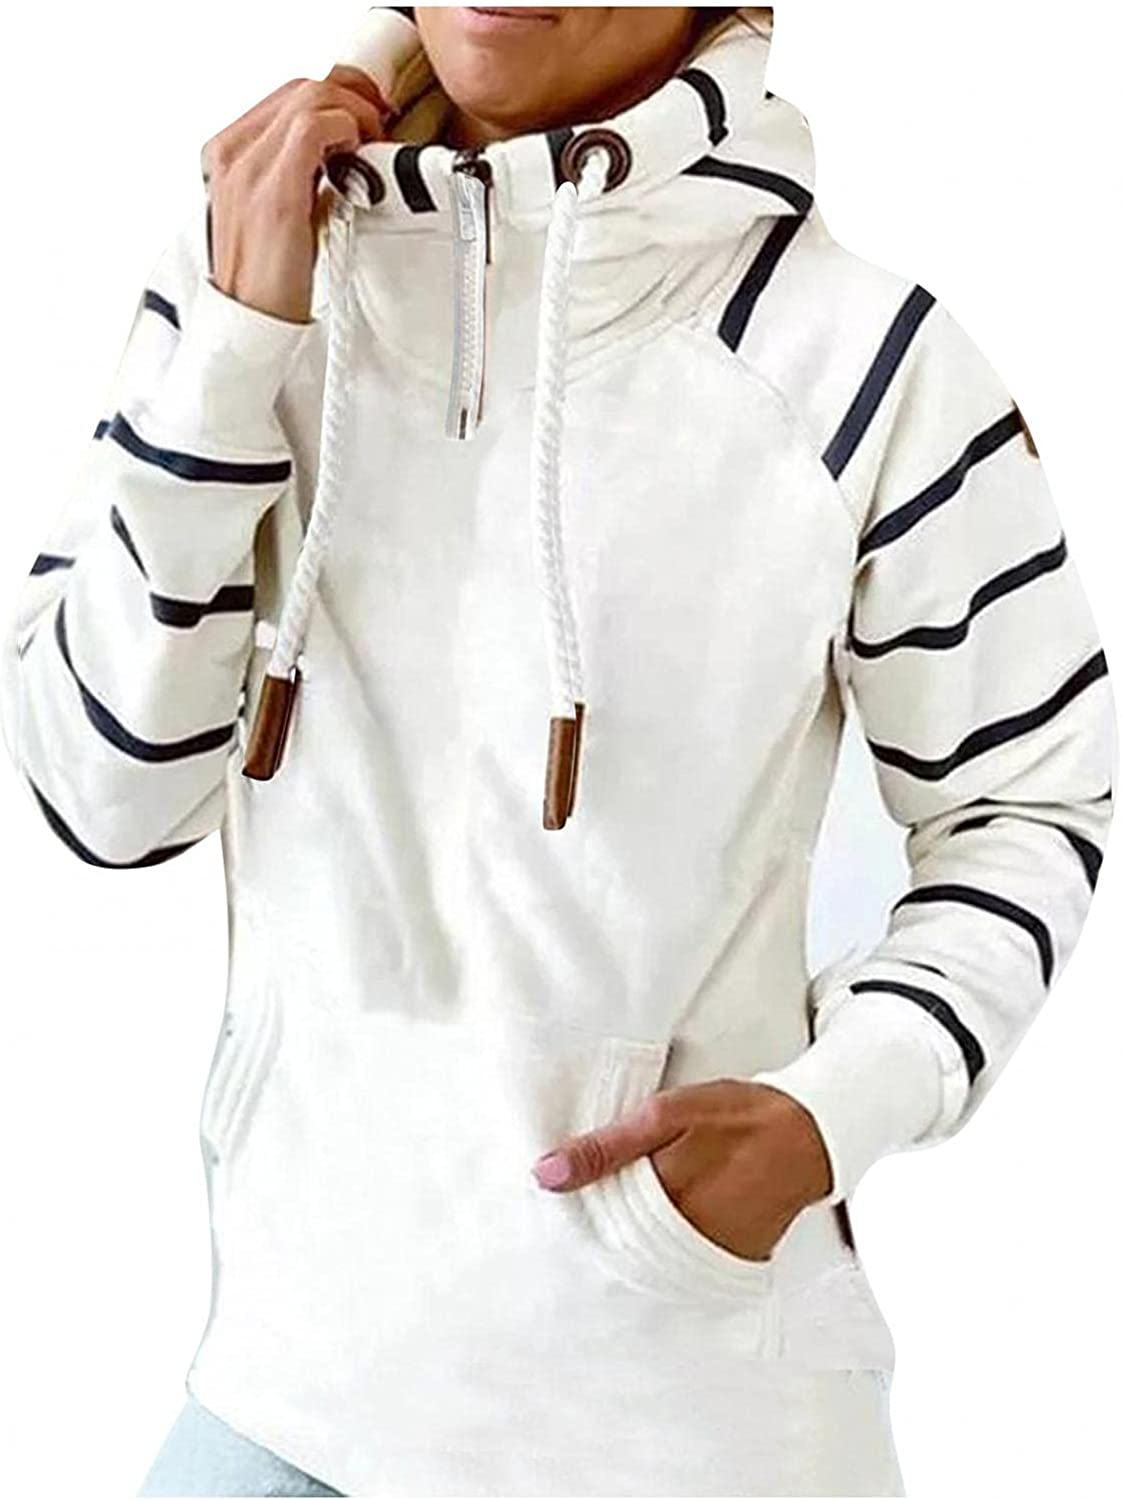 UQGHQO Hoodies for Women Autumn Zipper Turtleneck Stitching Long Sleeve Hooded Blouse Casual Patchwork Thermal Pullover